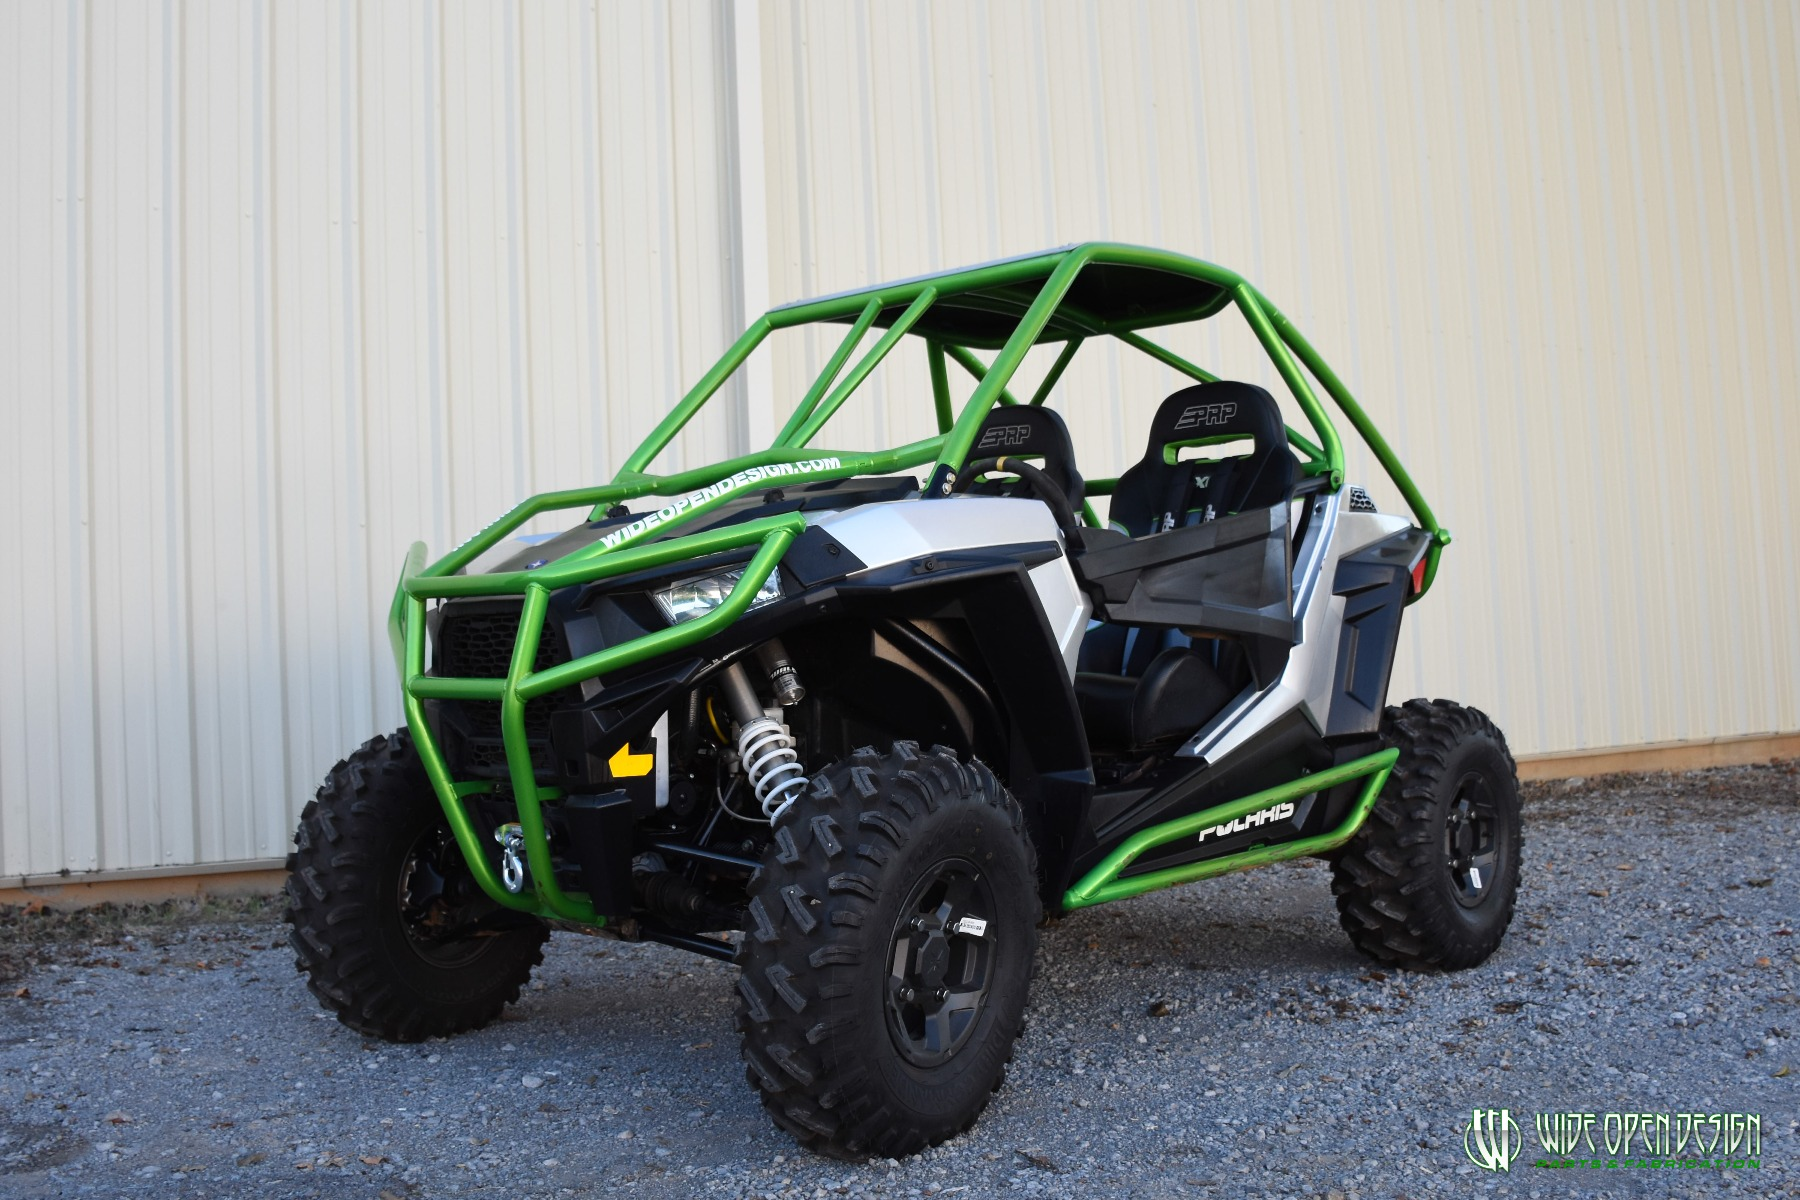 Jason's 1000s RZR with Wide Open Design Rolled Roof Cage, Front Bumper with Tie In, and Rocker Guards 13